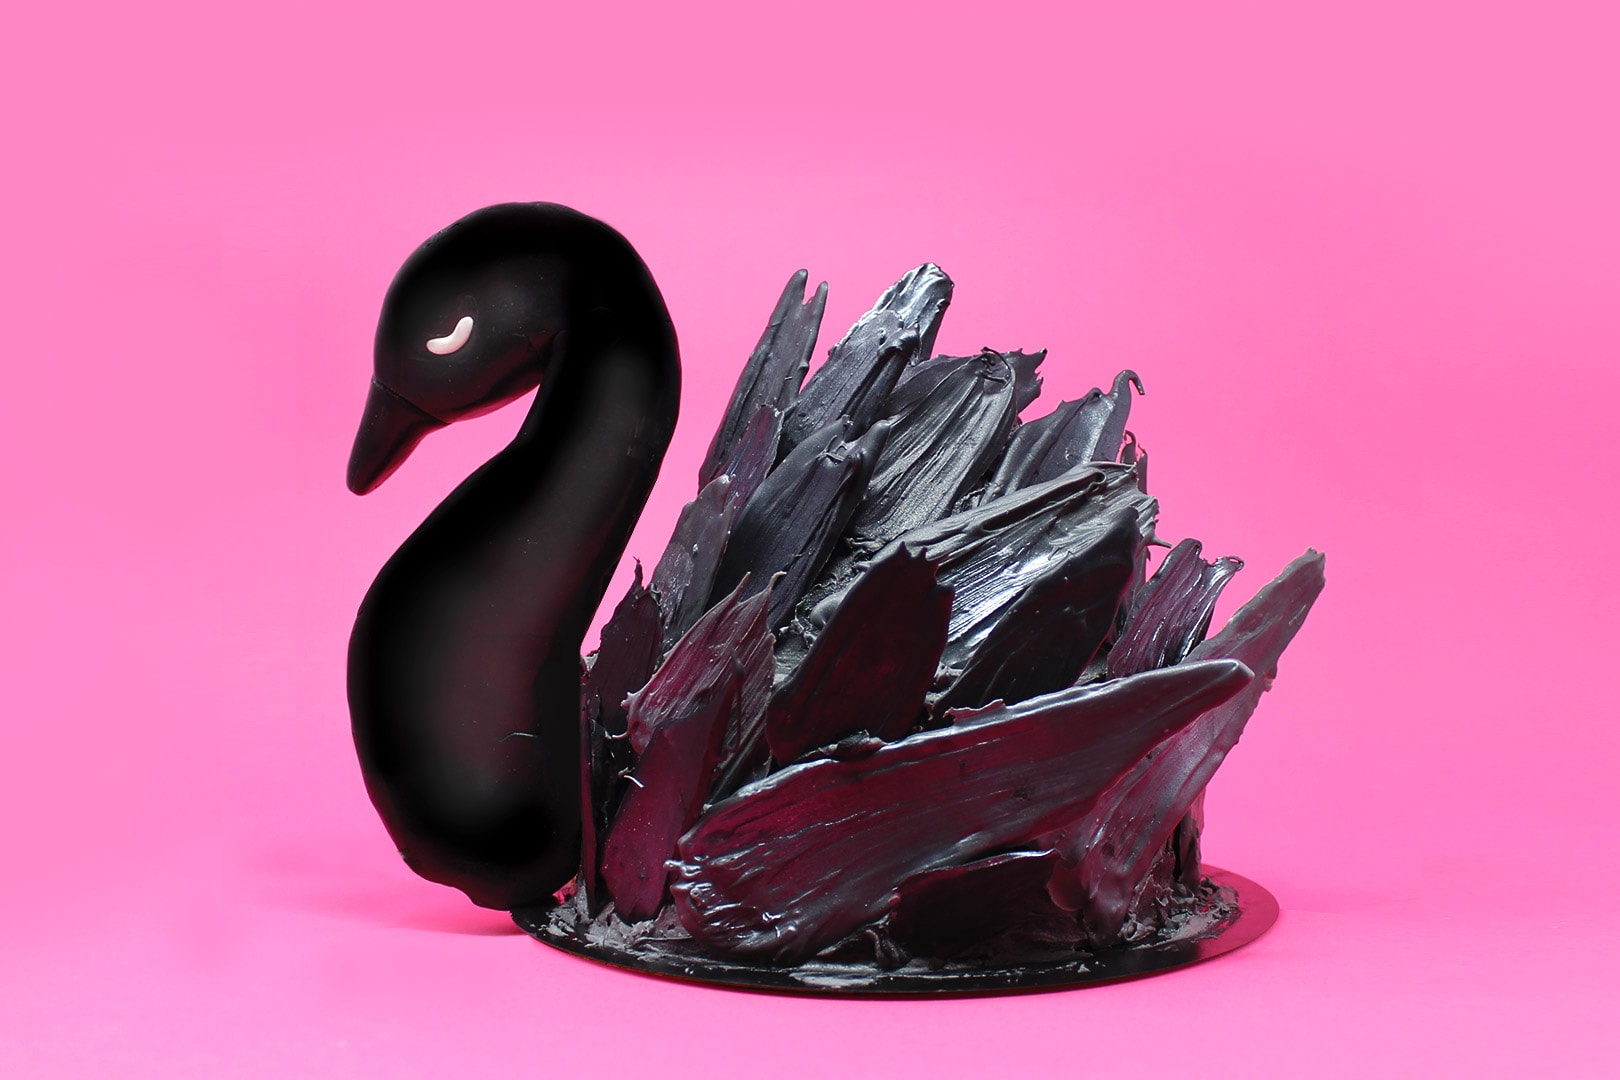 torta-cigno-nero-super-colors-paintbrush-cake-black-swan-4-min